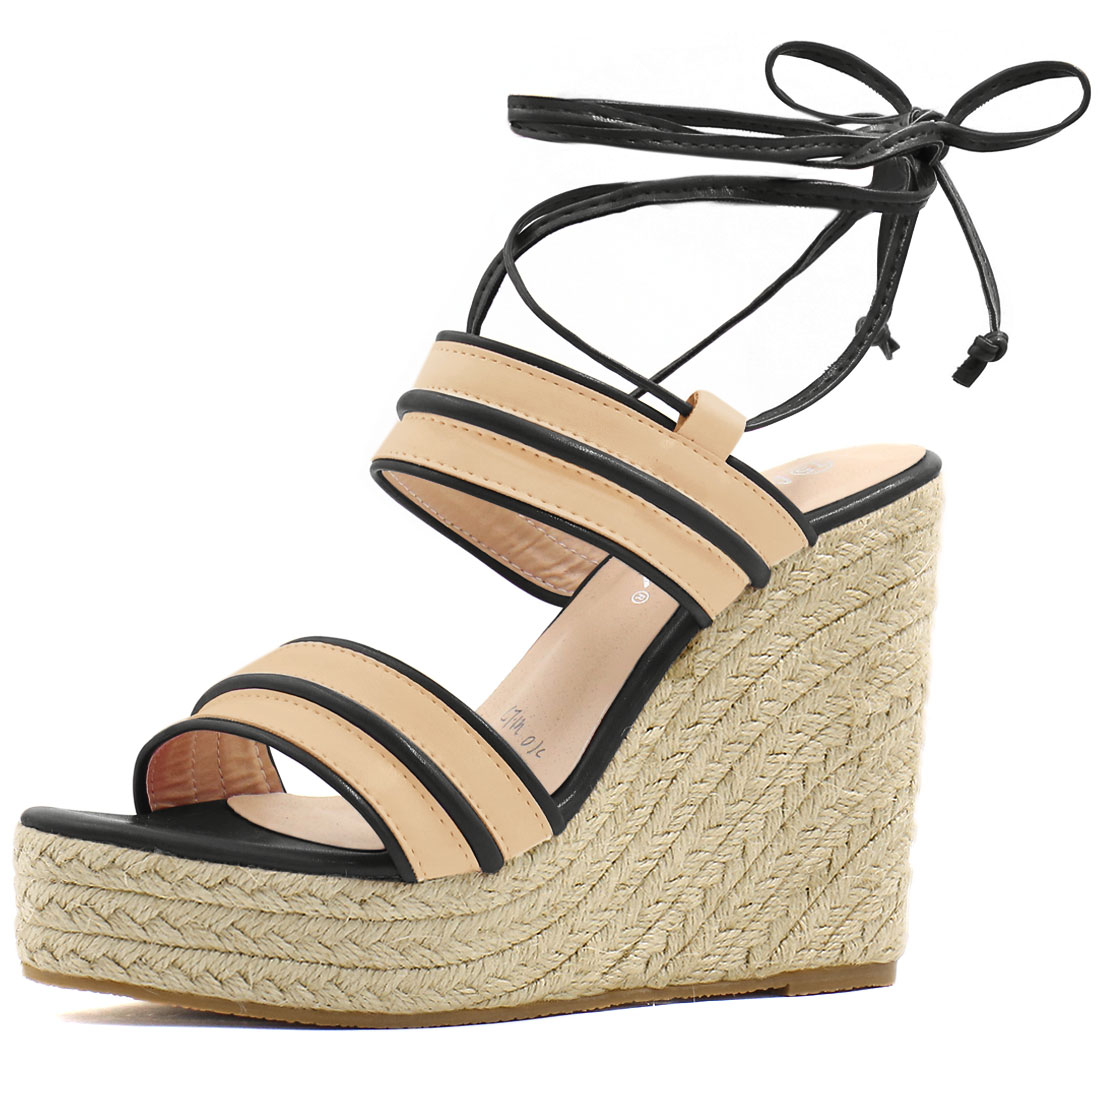 Women Striped Ankle Tie Espadrille Wedge Sandals Apricot Black US 7.5